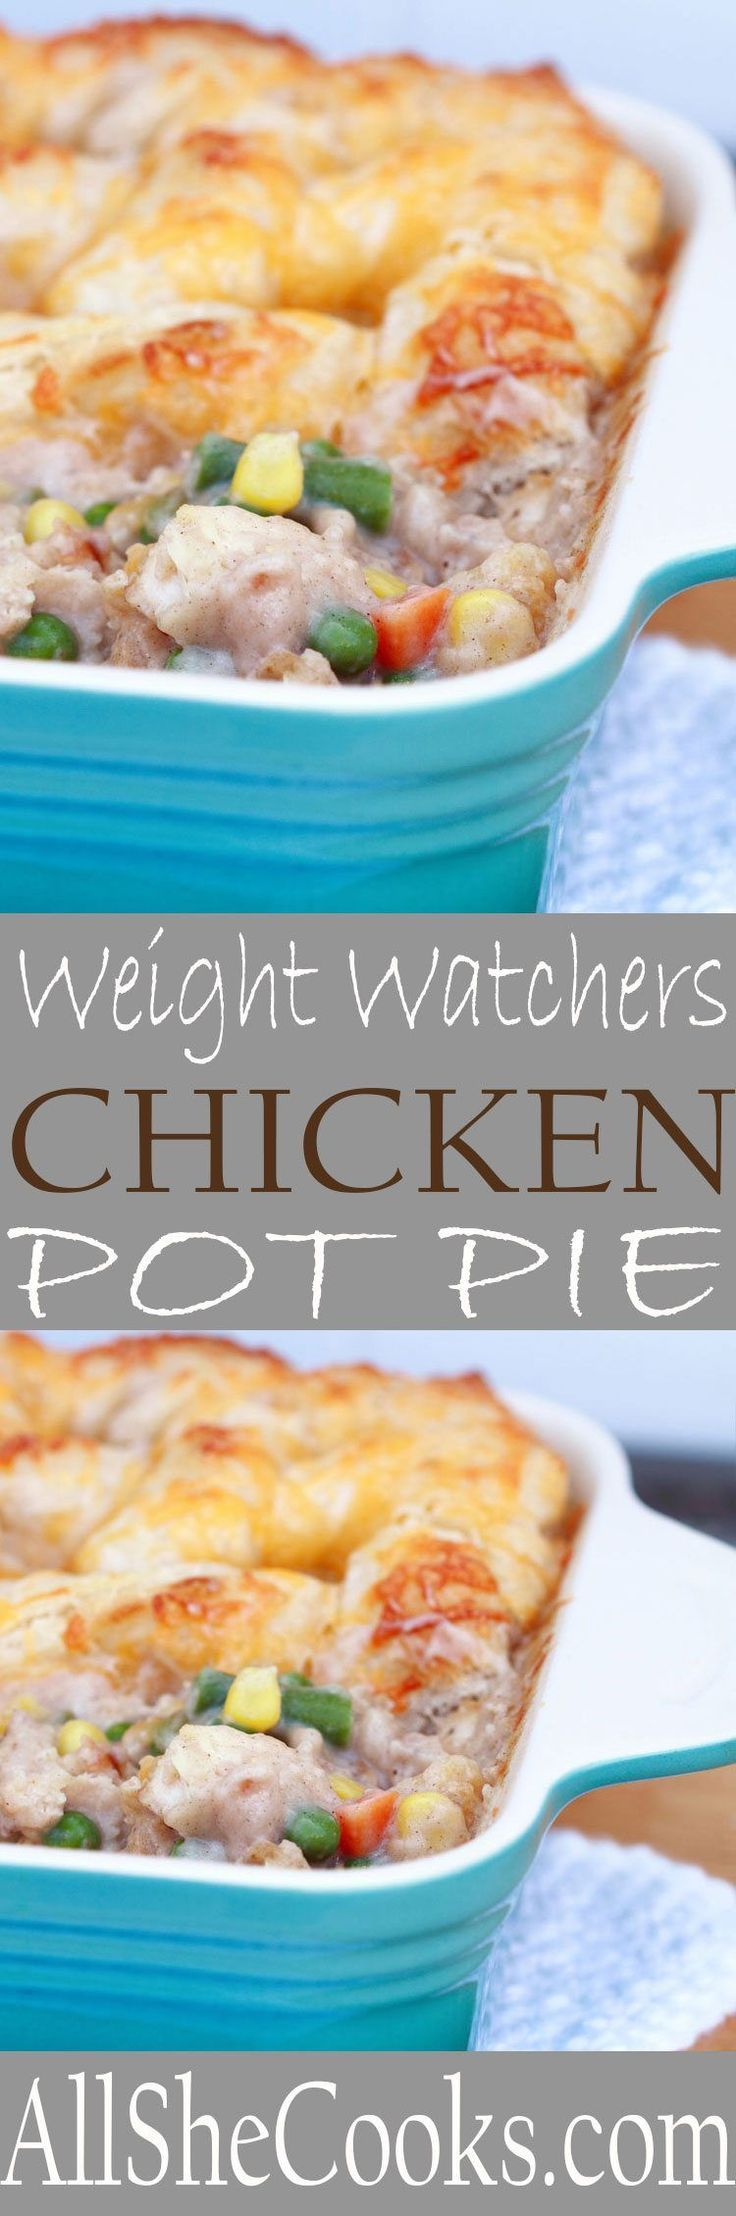 Enjoy Weight Watchers Chicken Pot Pie while watching your weight. Chicken pot pie doesn't have to mean high calories. Great flavor! best-low-fat-weight-watchers-chicken-pot-pie